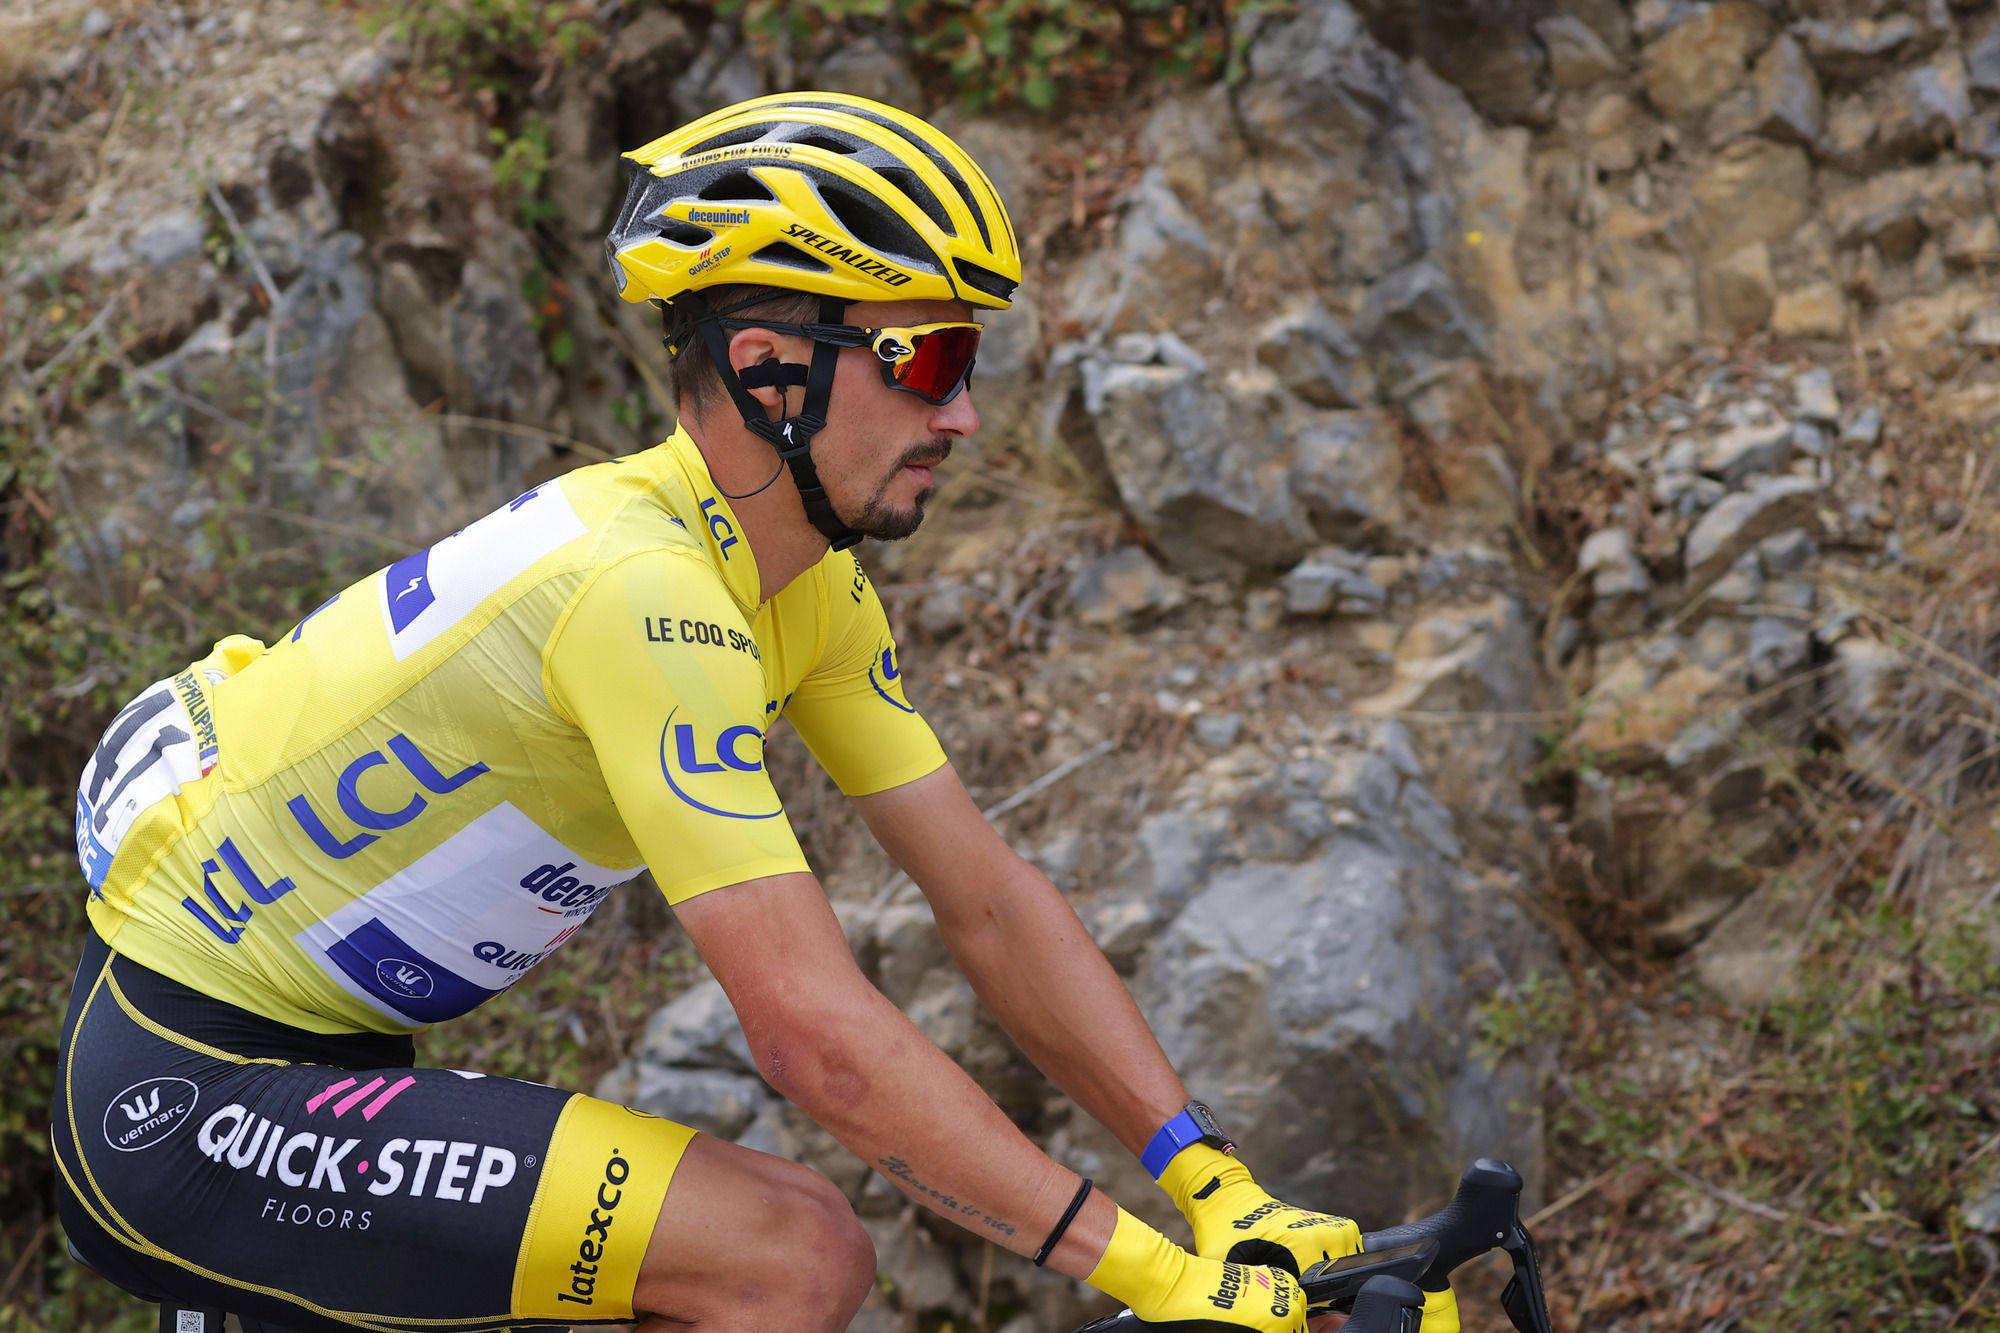 Deceuninck-QuickStep's Julian Alaphilippe easily held on to his leader's yellow jersey for another day on stage 3 of the 2020 Tour de France, finishing safely in the main bunch in Sisteron